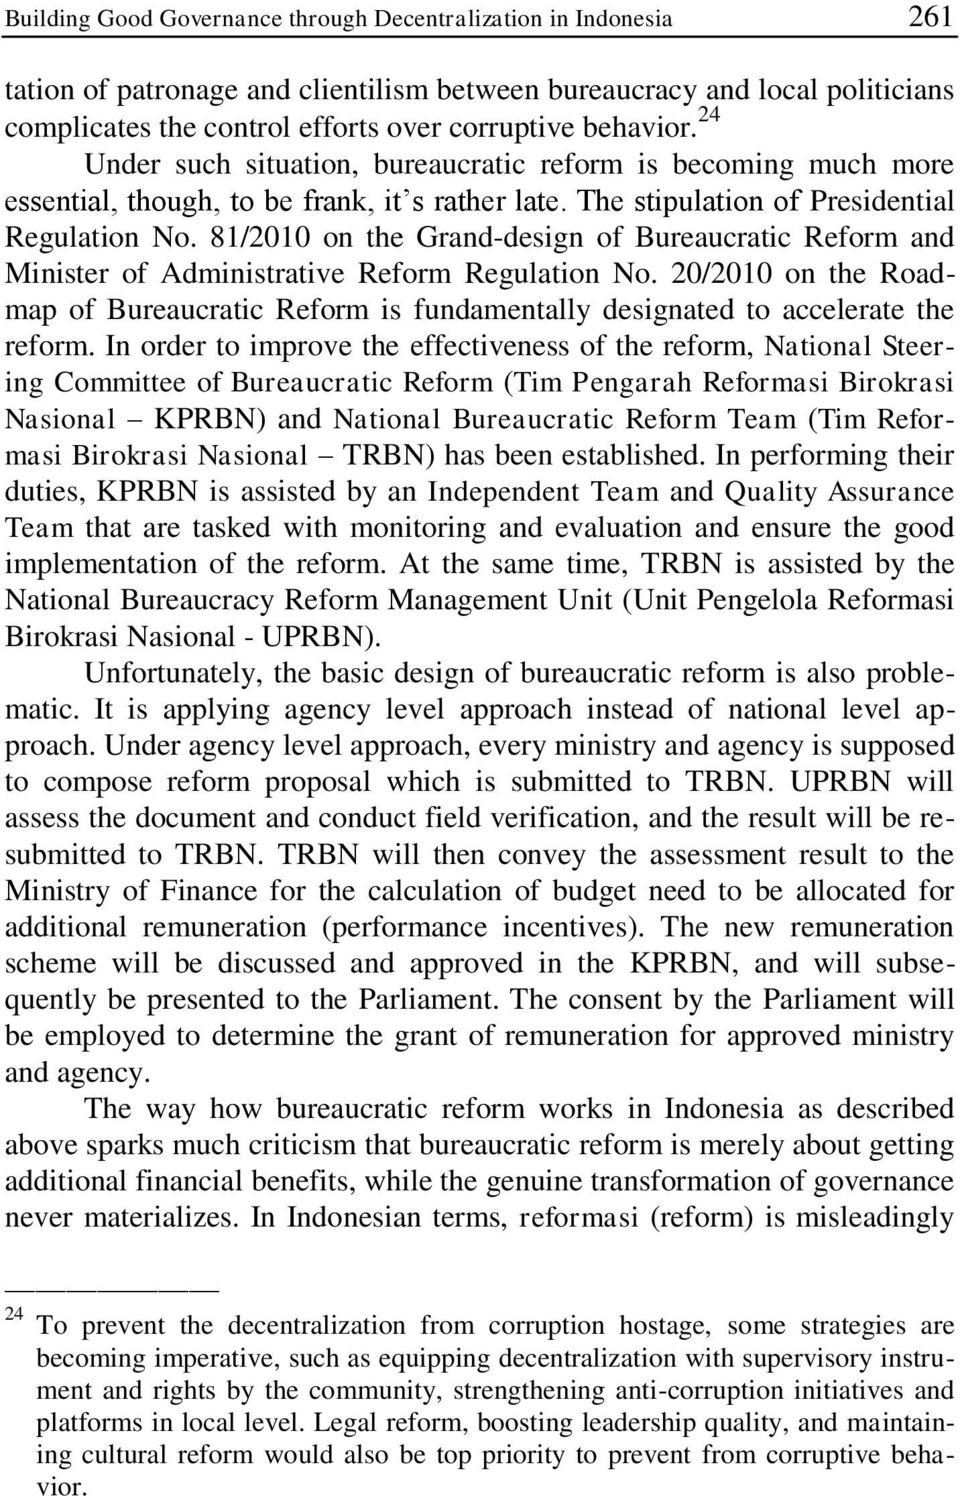 81/2010 on the Grand-design of Bureaucratic Reform and Minister of Administrative Reform Regulation No.